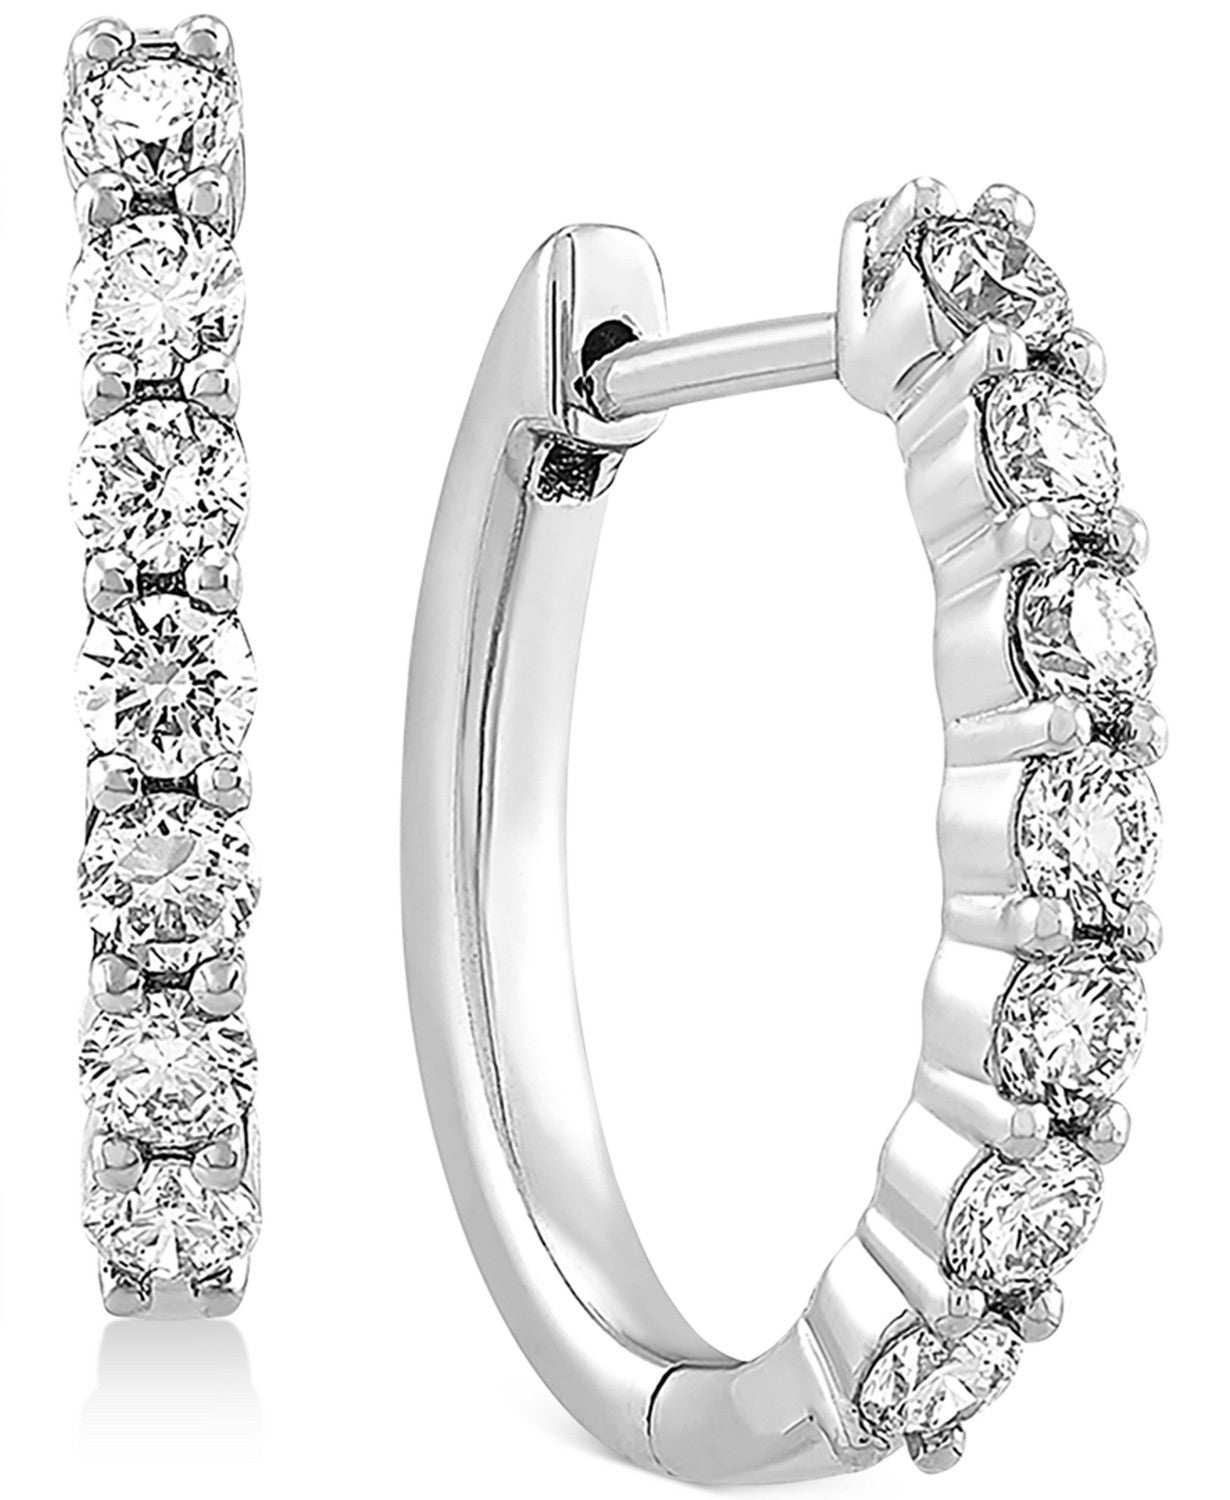 Lab Created Diamond Small Hoop Earrings (5/8 ct. t.w.) in Sterling Silver, .63""